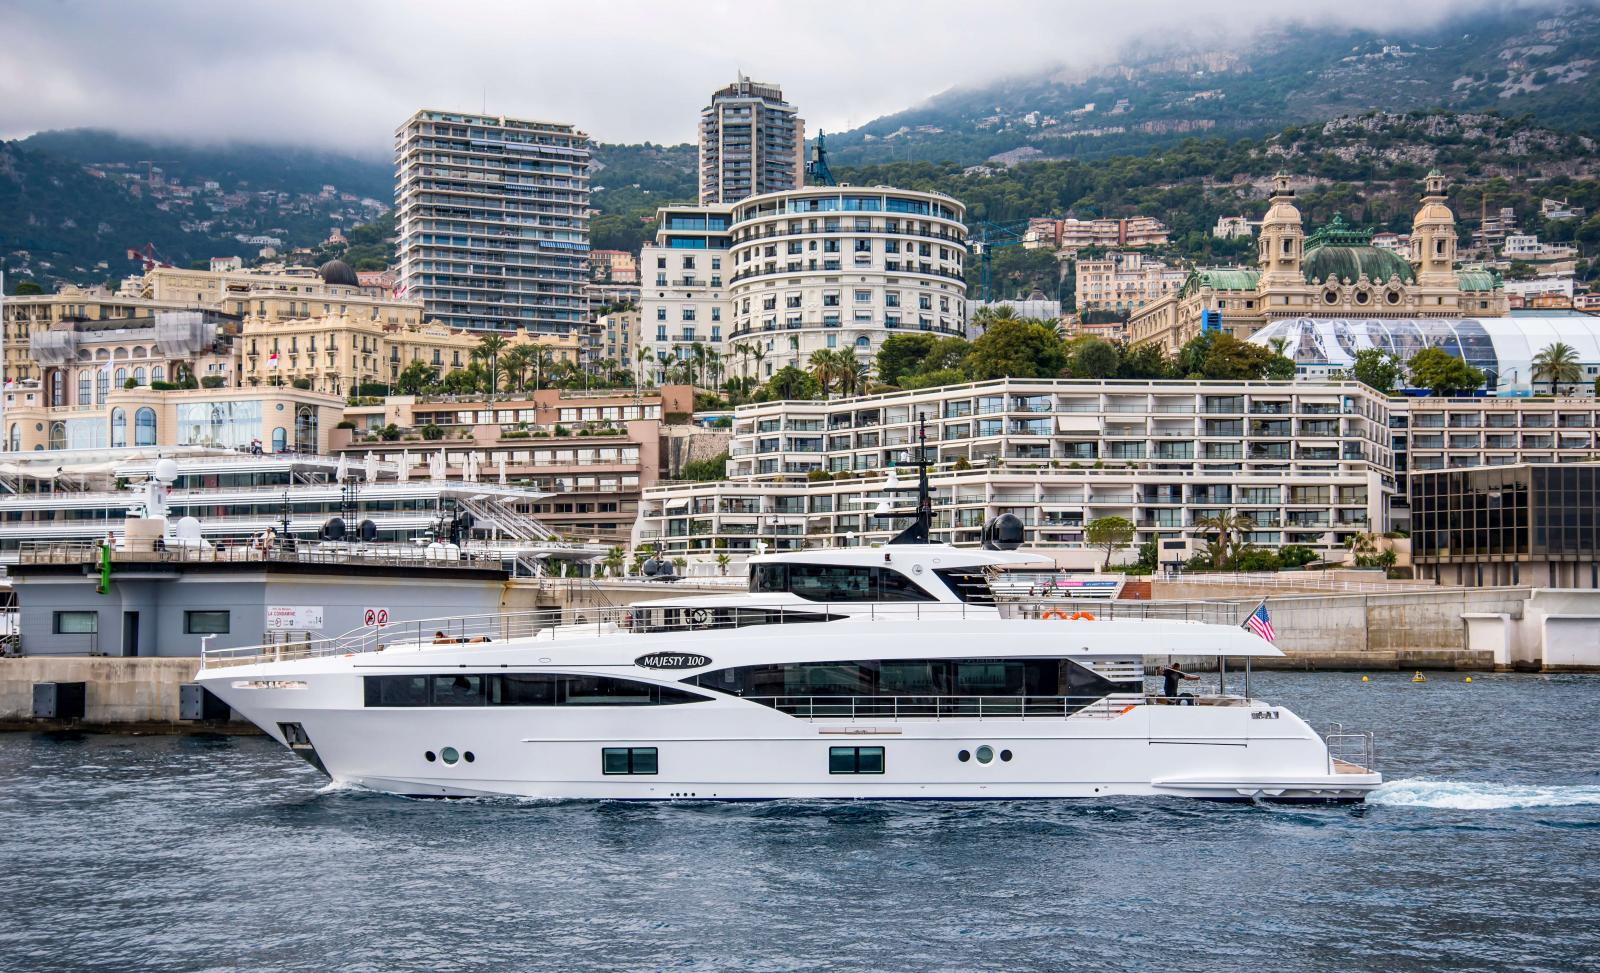 Majesty 110 arriving at the port of Monaco